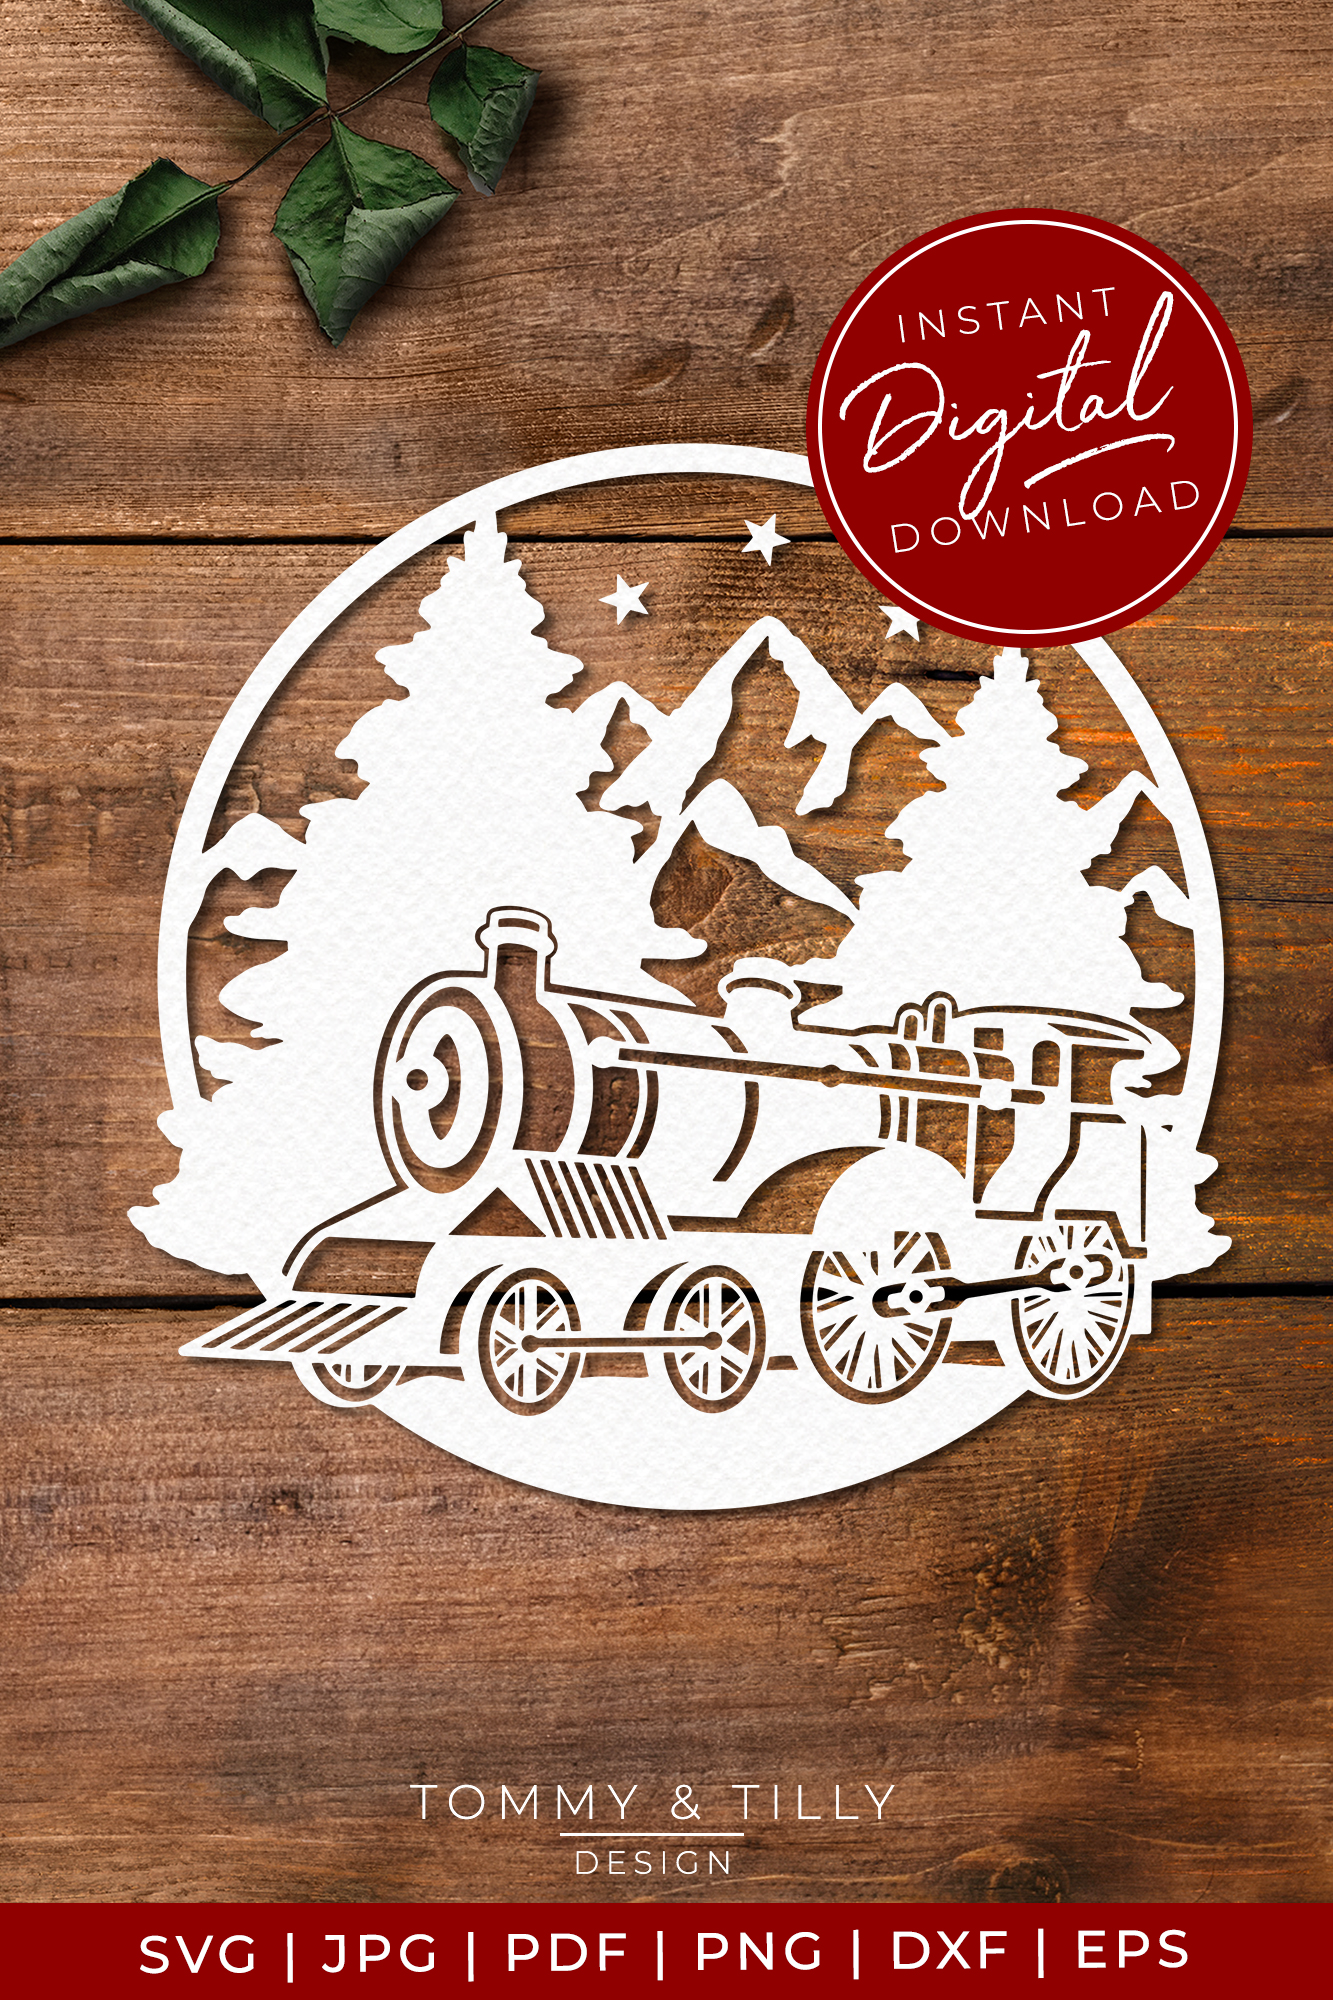 Train Mountain Scene - SVG EPS DXF PNG PDF JPG example image 3